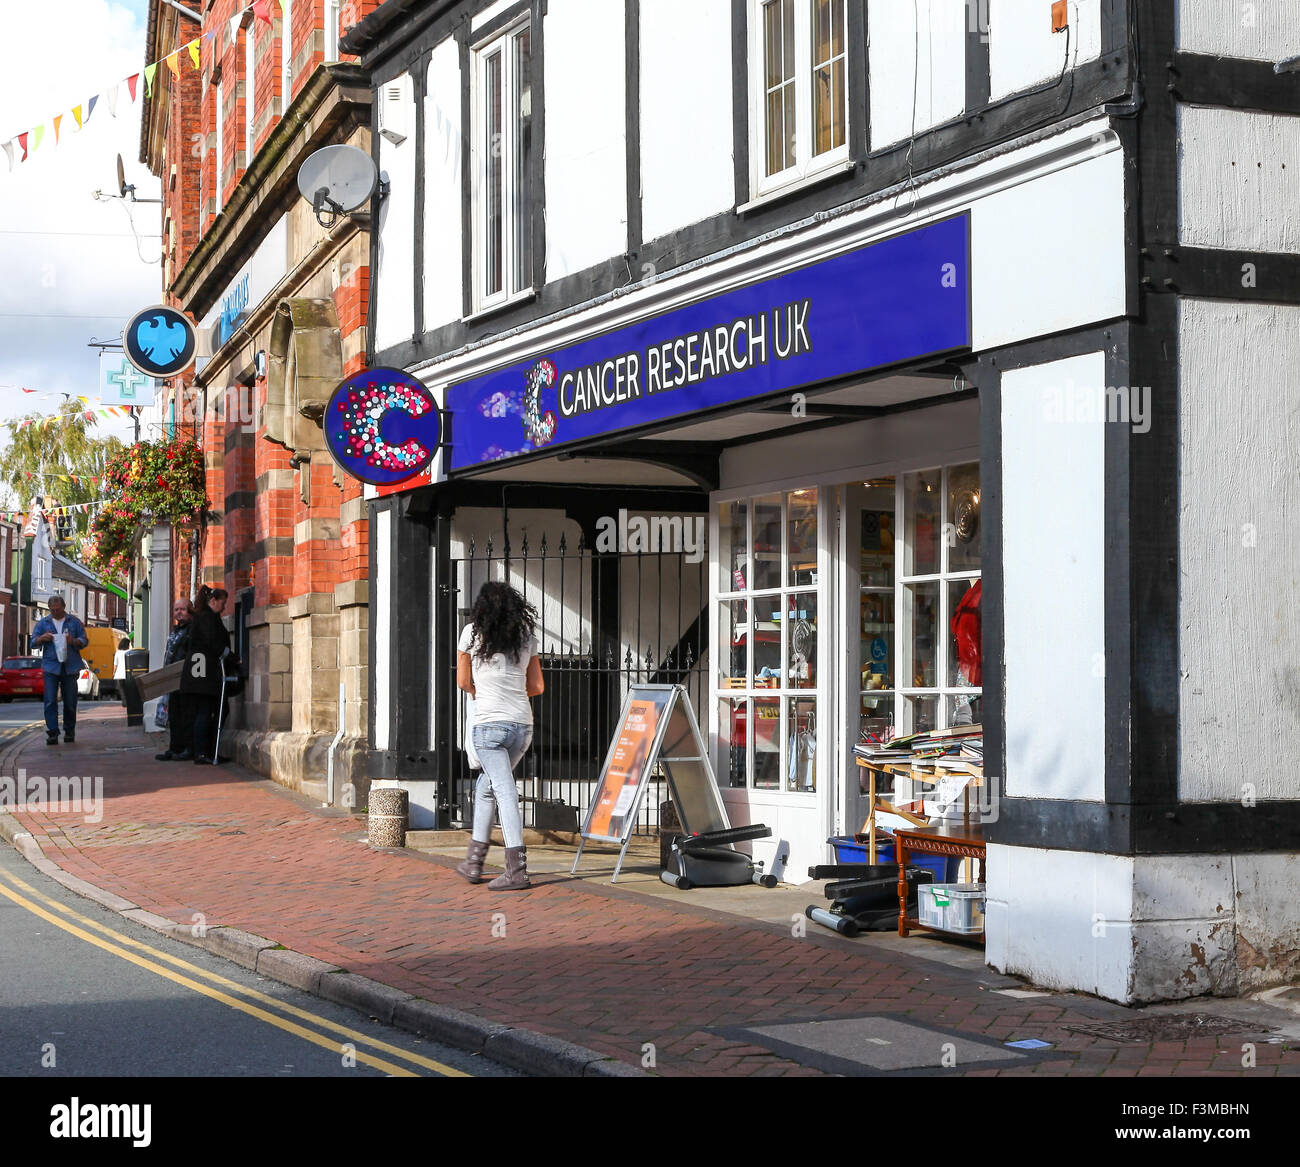 The frontage or facade of a Cancer Research UK shop in Middlewich Cheshire England UK - Stock Image